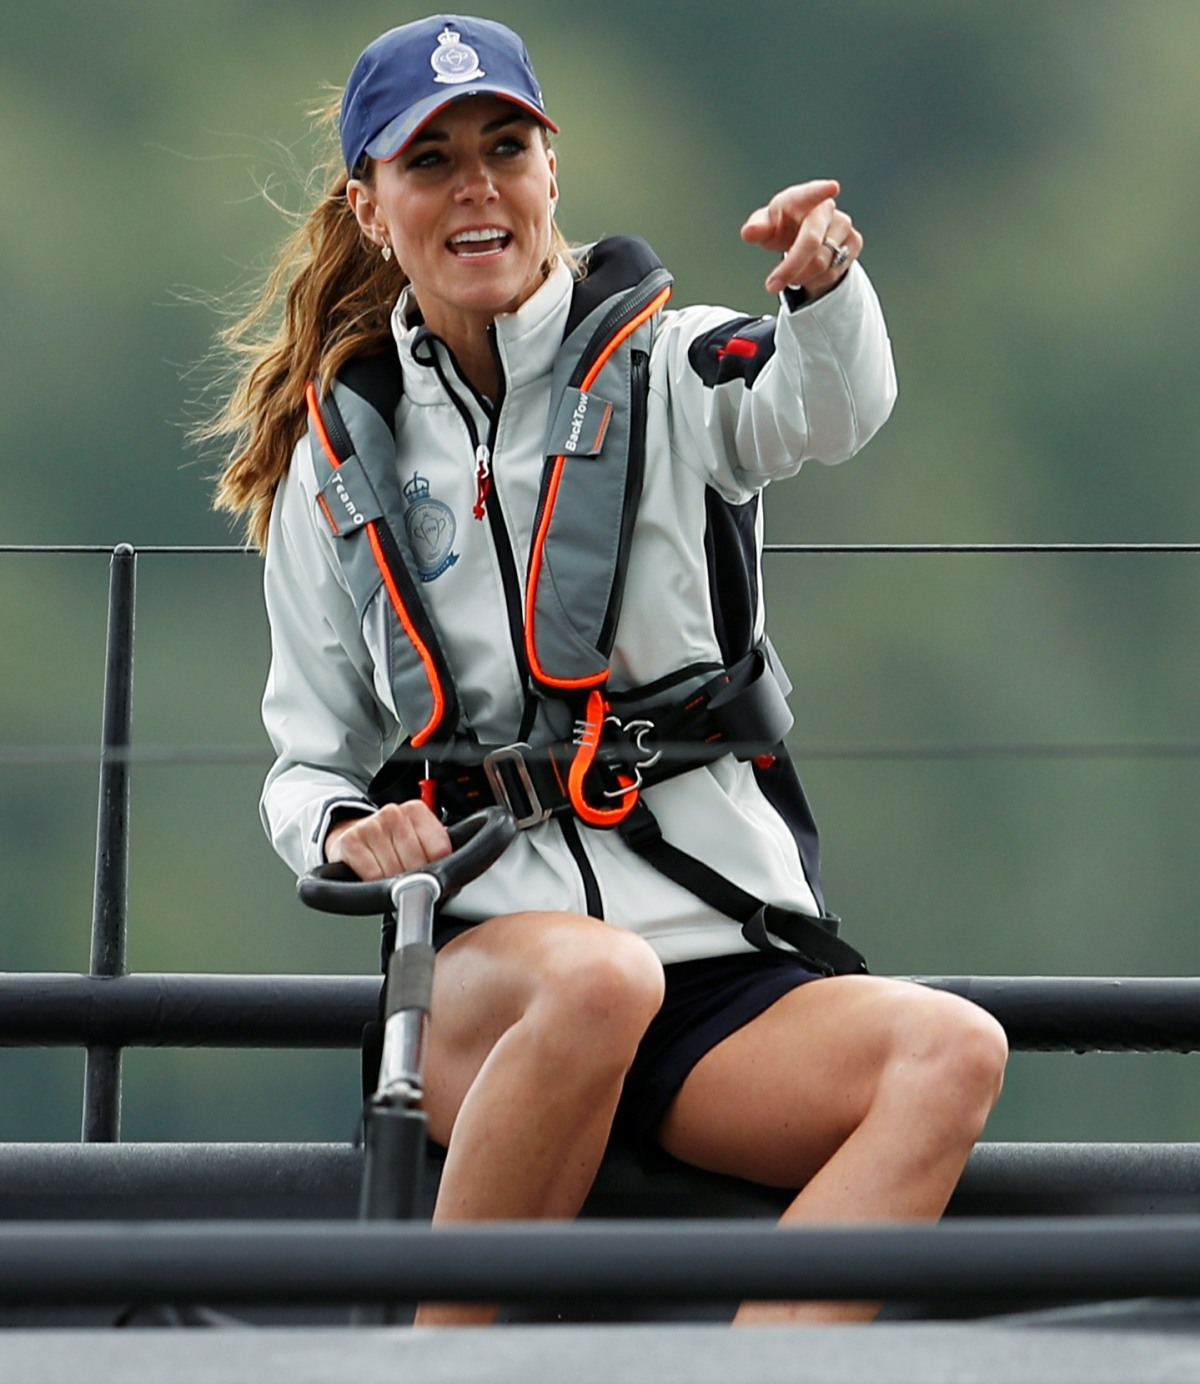 Catherine Duchess of Cambridge attends the King's Cup Regatta in Isle of Wight